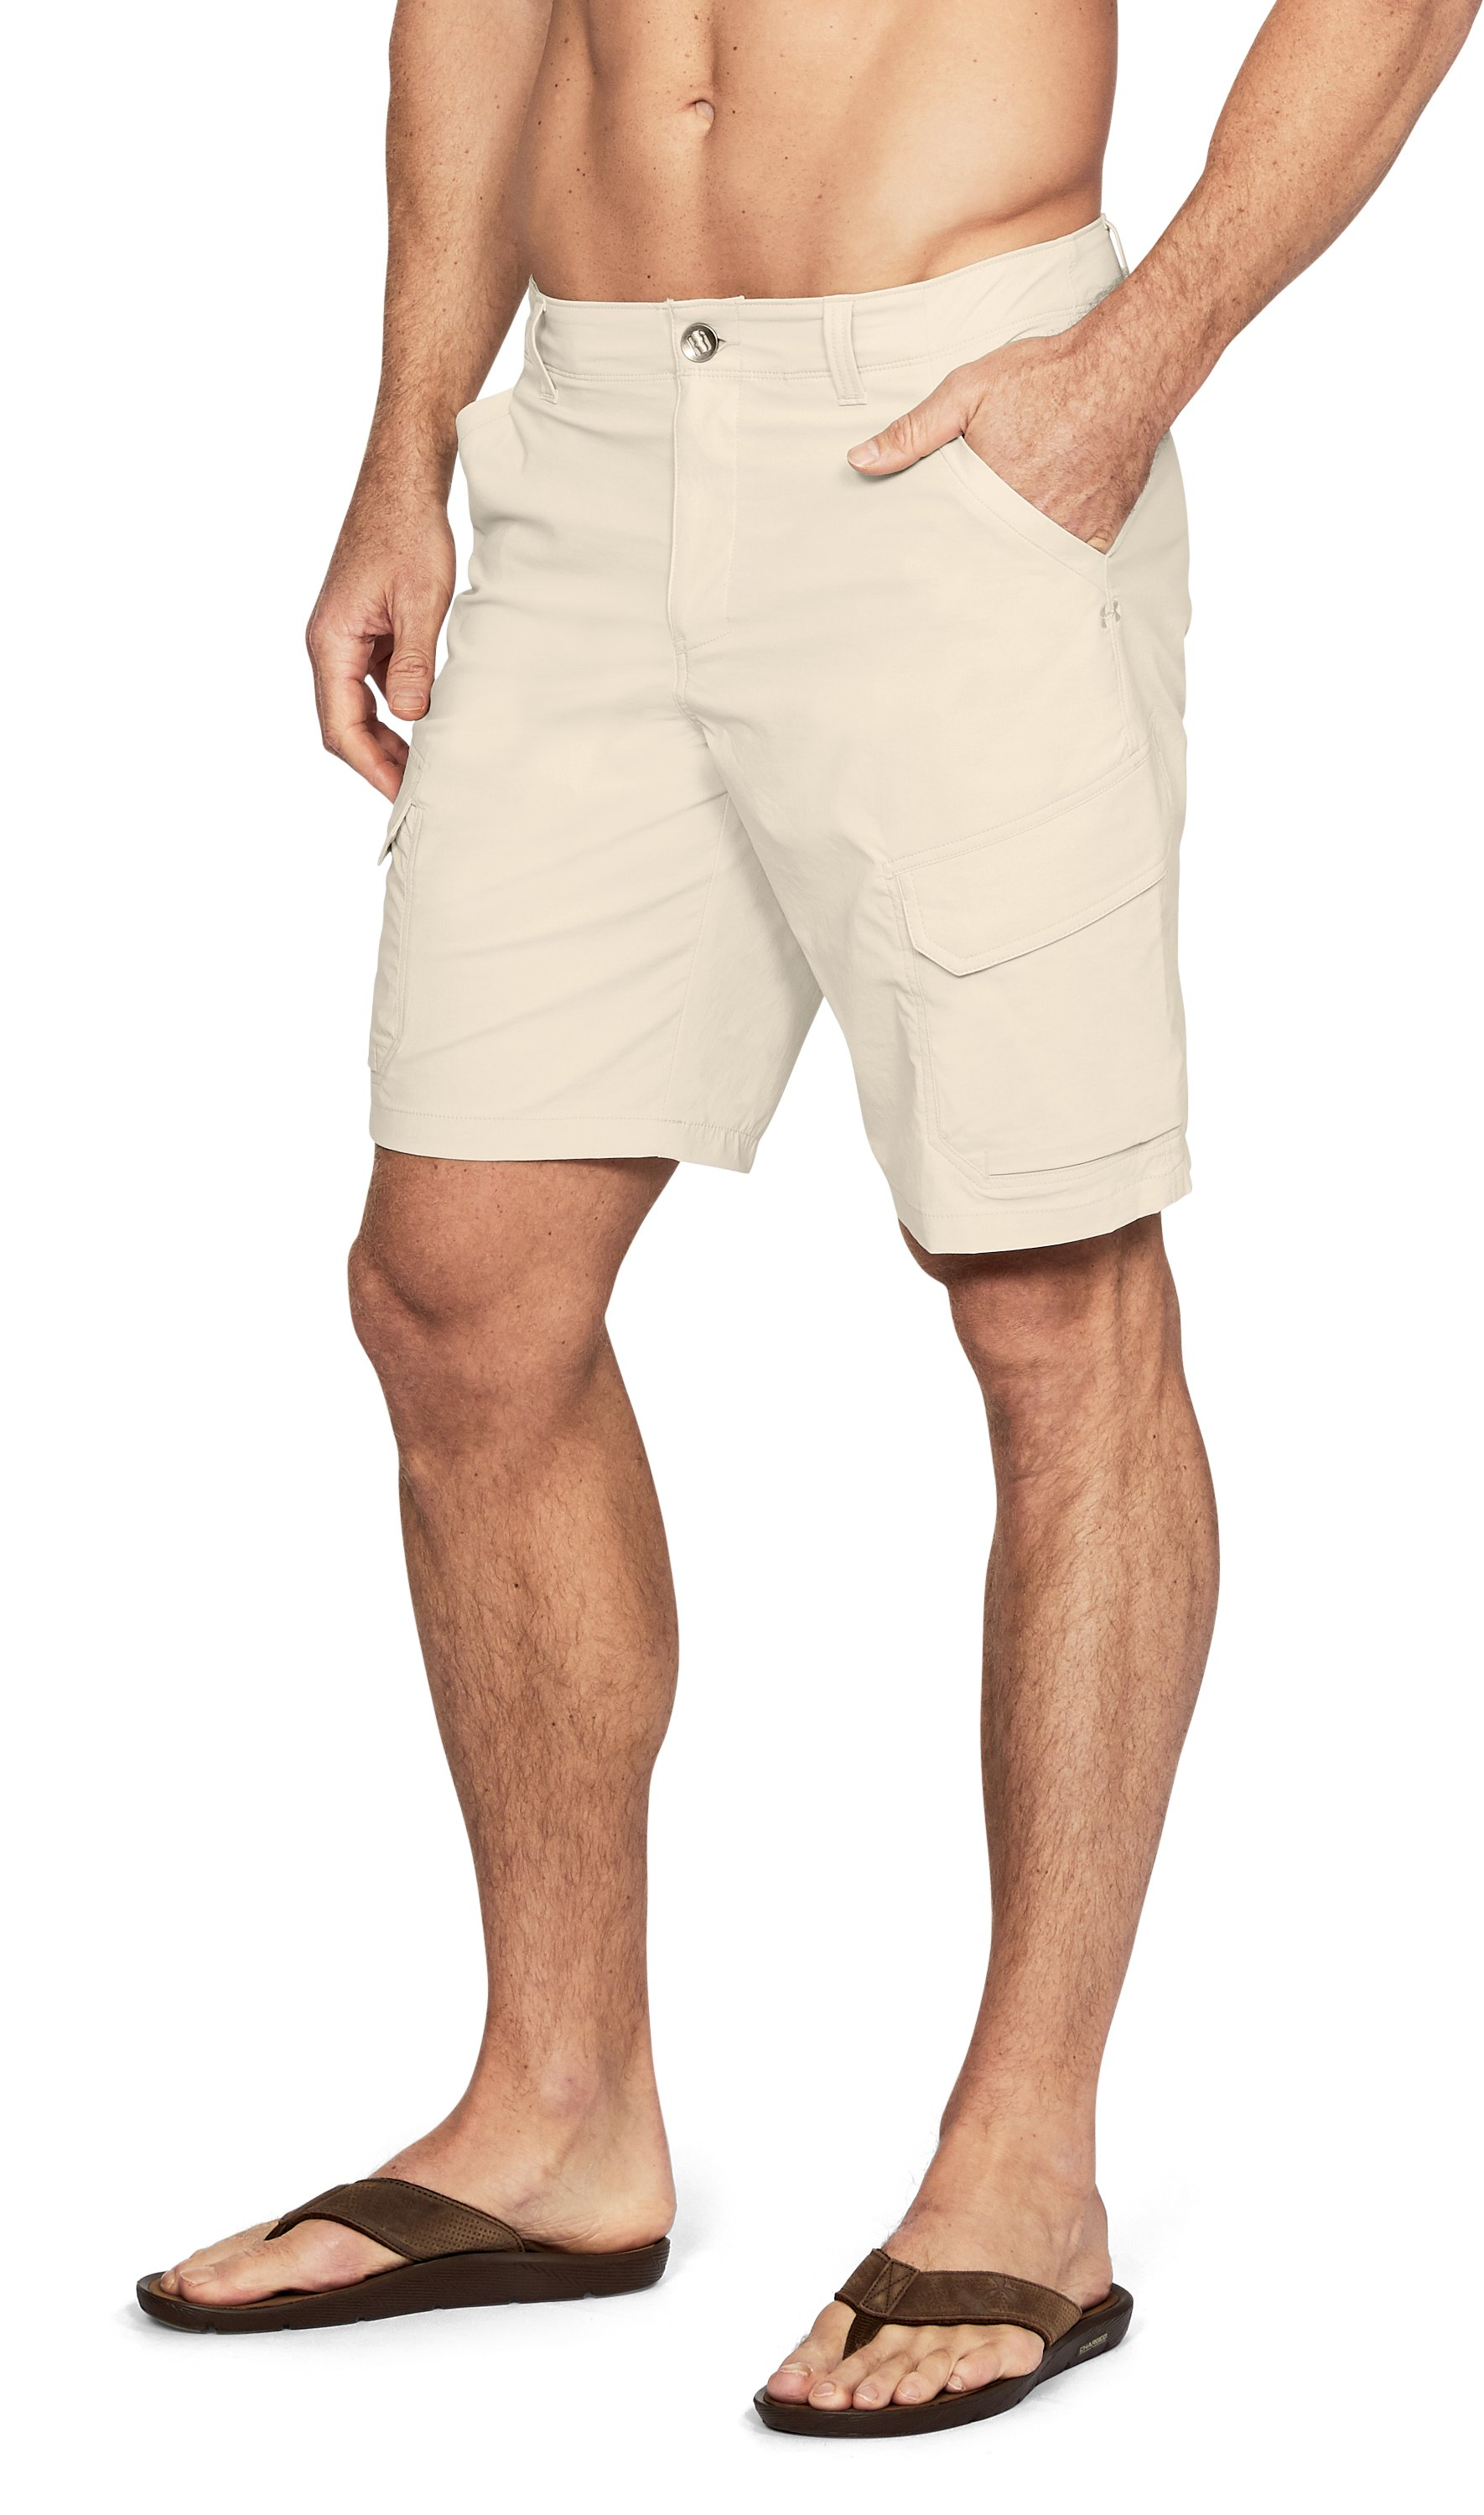 baja shorts Men's UA Fish Hunter Cargo Shorts Love the shorts!...Best shorts I own, period....Great for golf